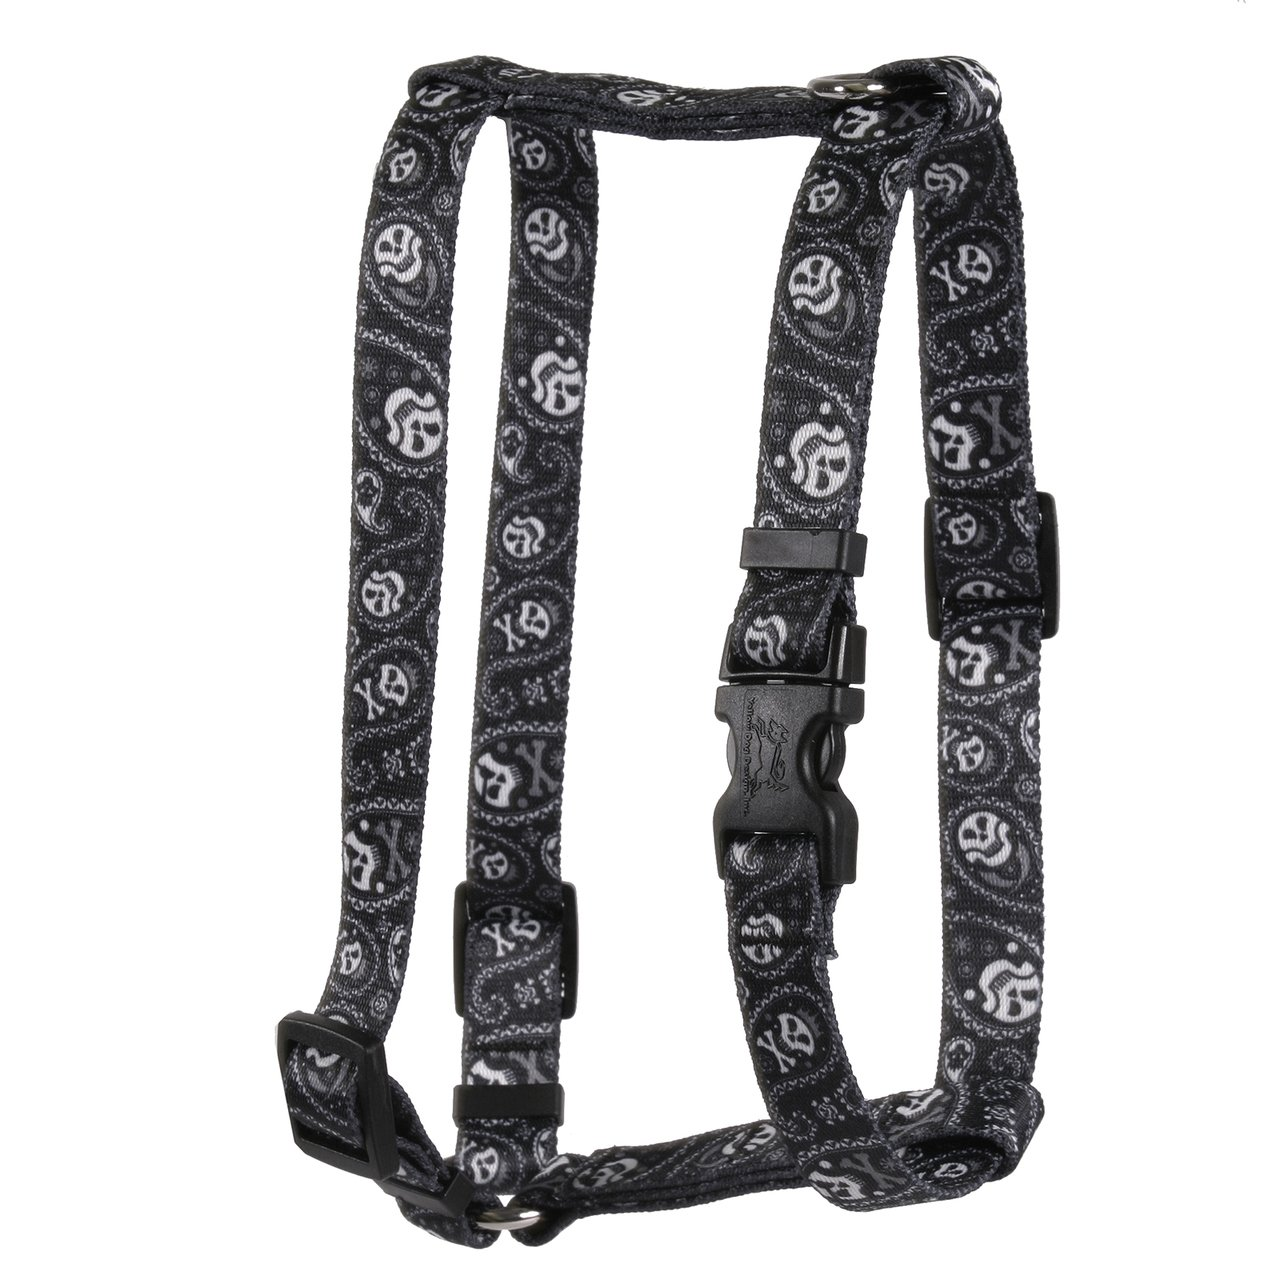 Yellow Dog Design Paisley Skulls Black Roman Style H Dog Harness, X-Small-3/8 Wide fits Chest of 8 to 14''